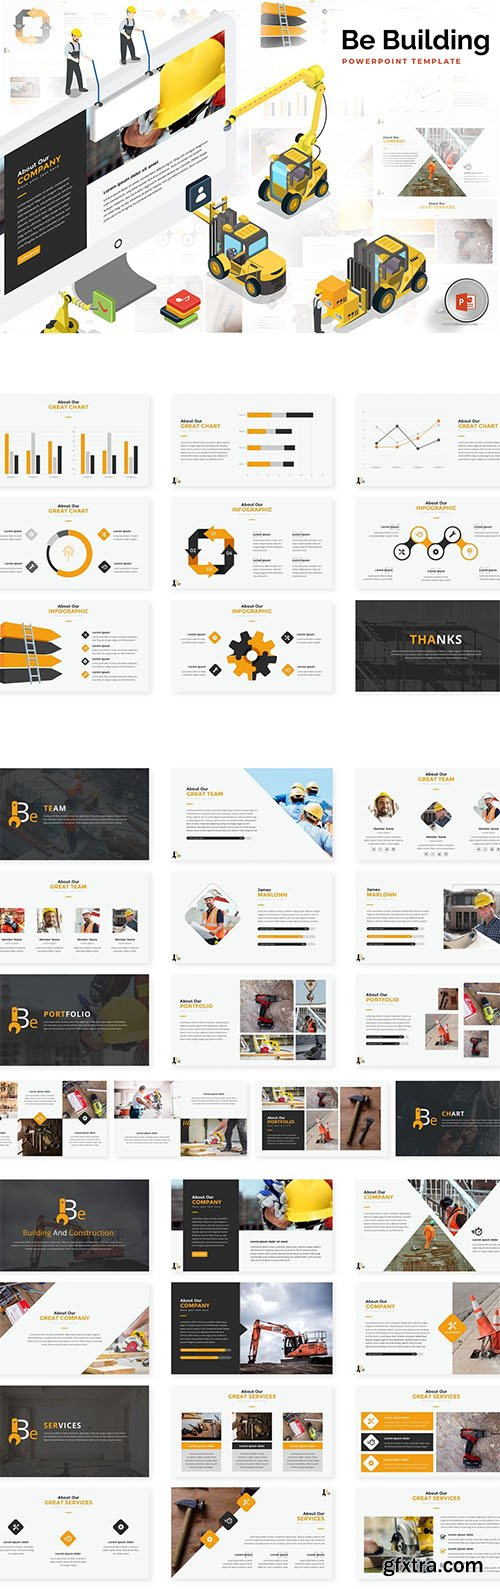 Building & Construction PowerPoint, Keynote and Google Slides Templates